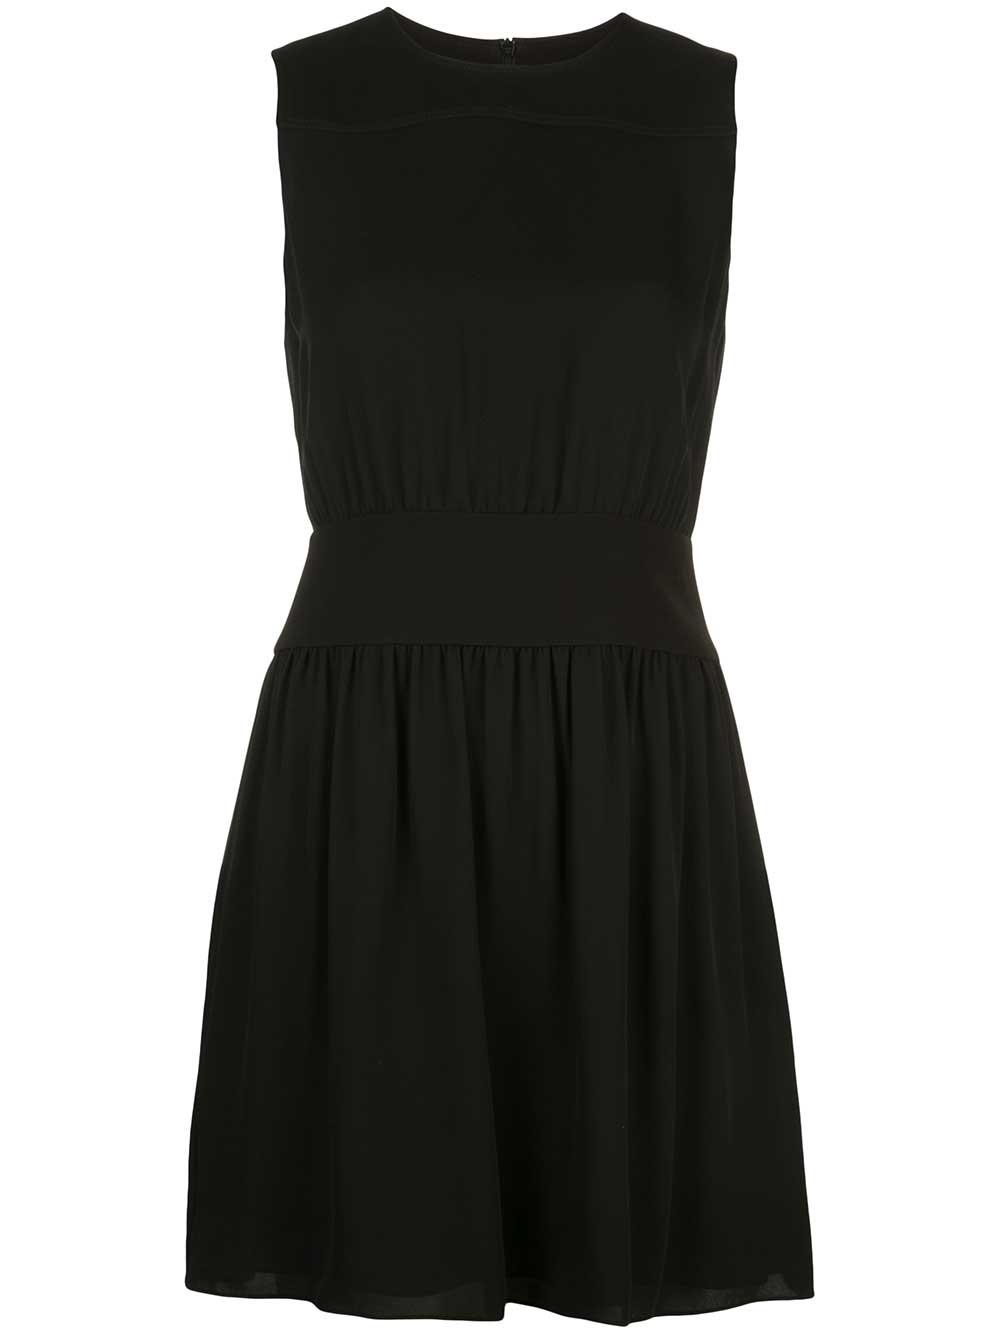 Blouson Sleeveless Dress